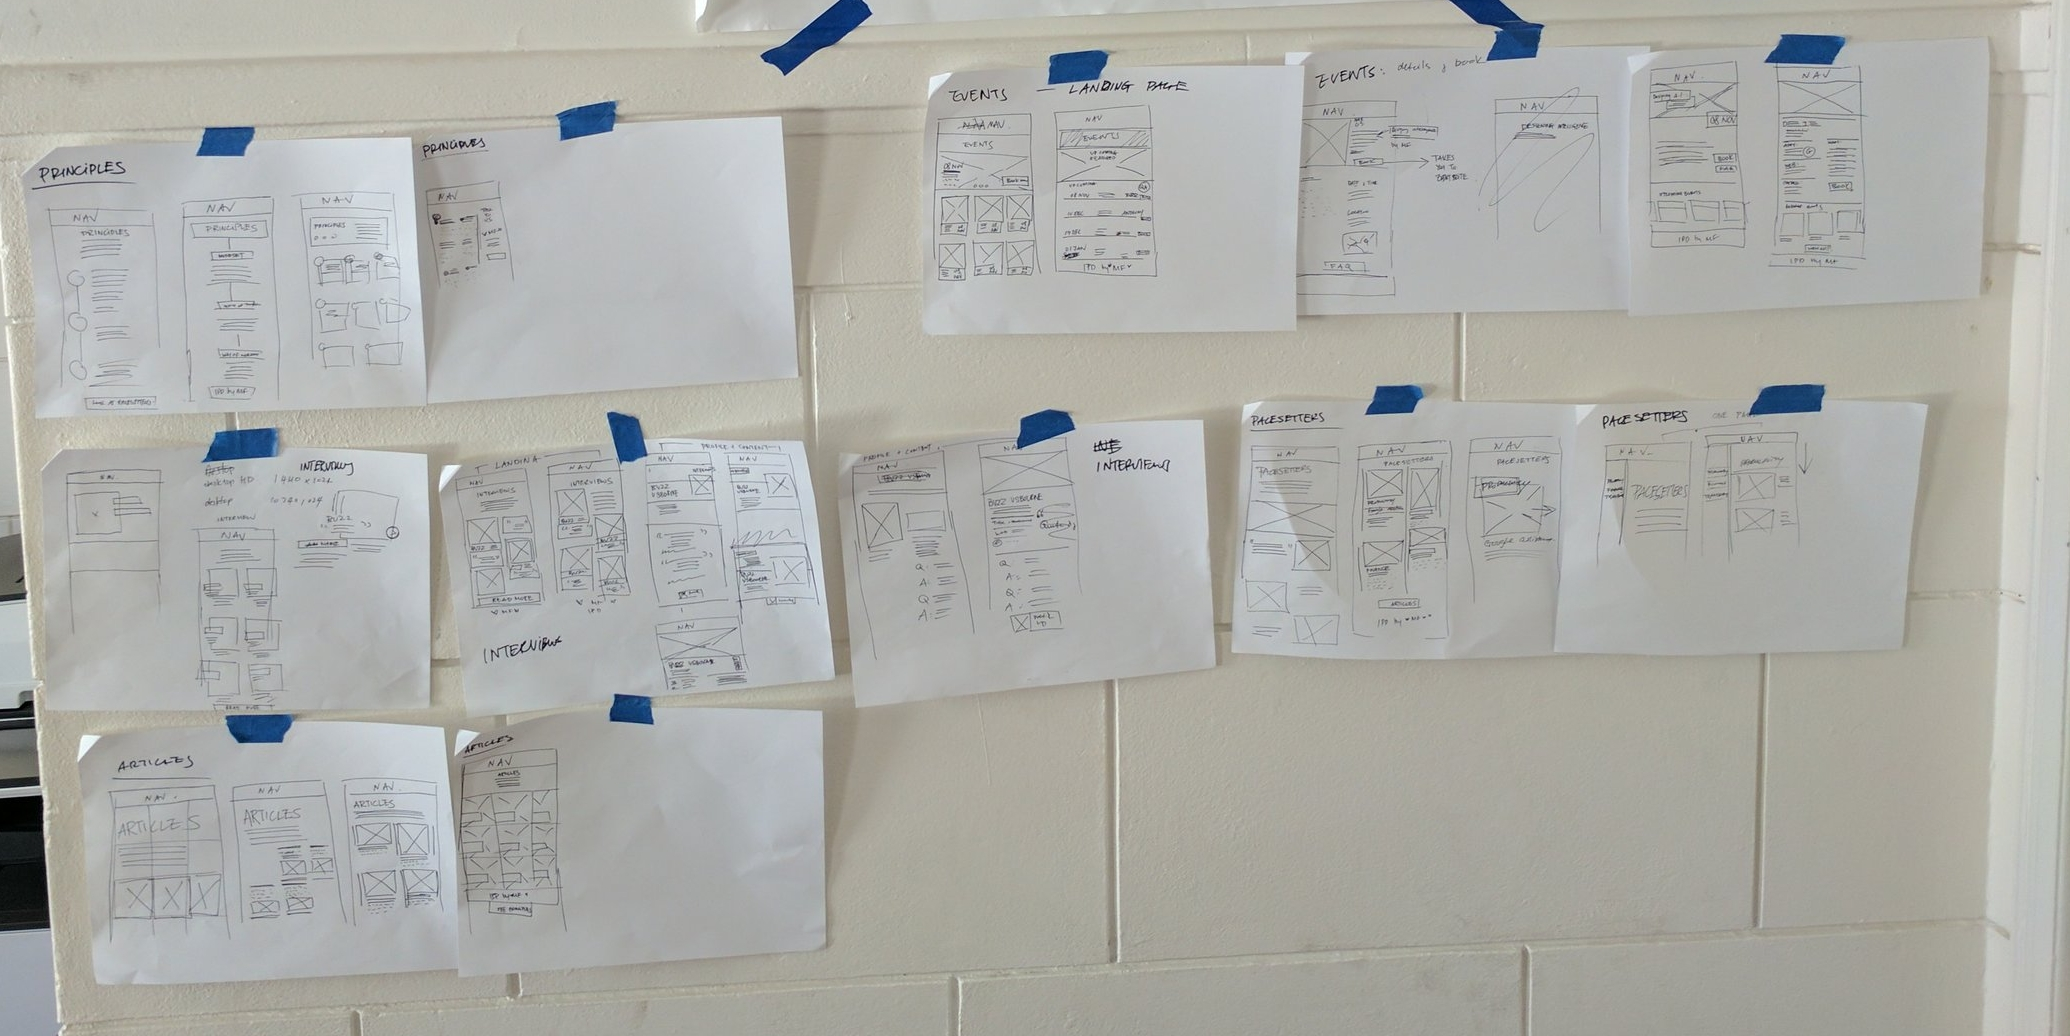 initial wireframes overview